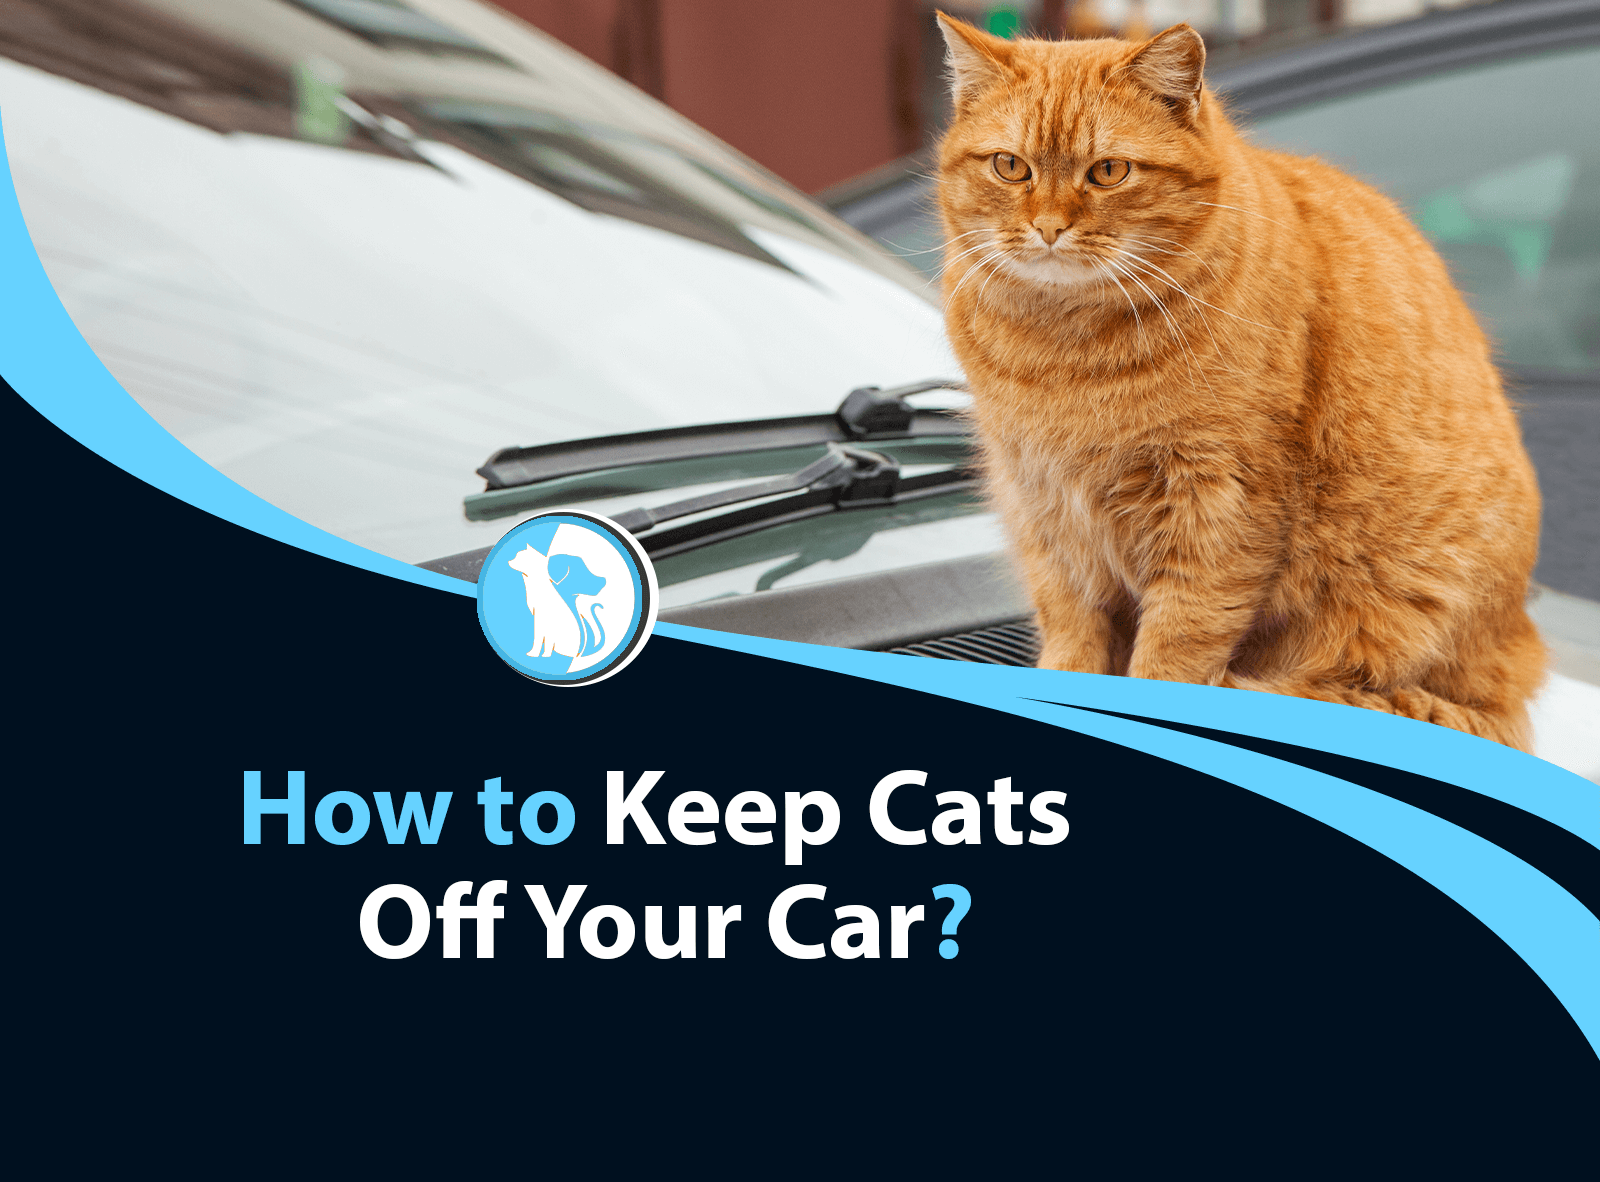 How to Keep Cats Off Your Car?